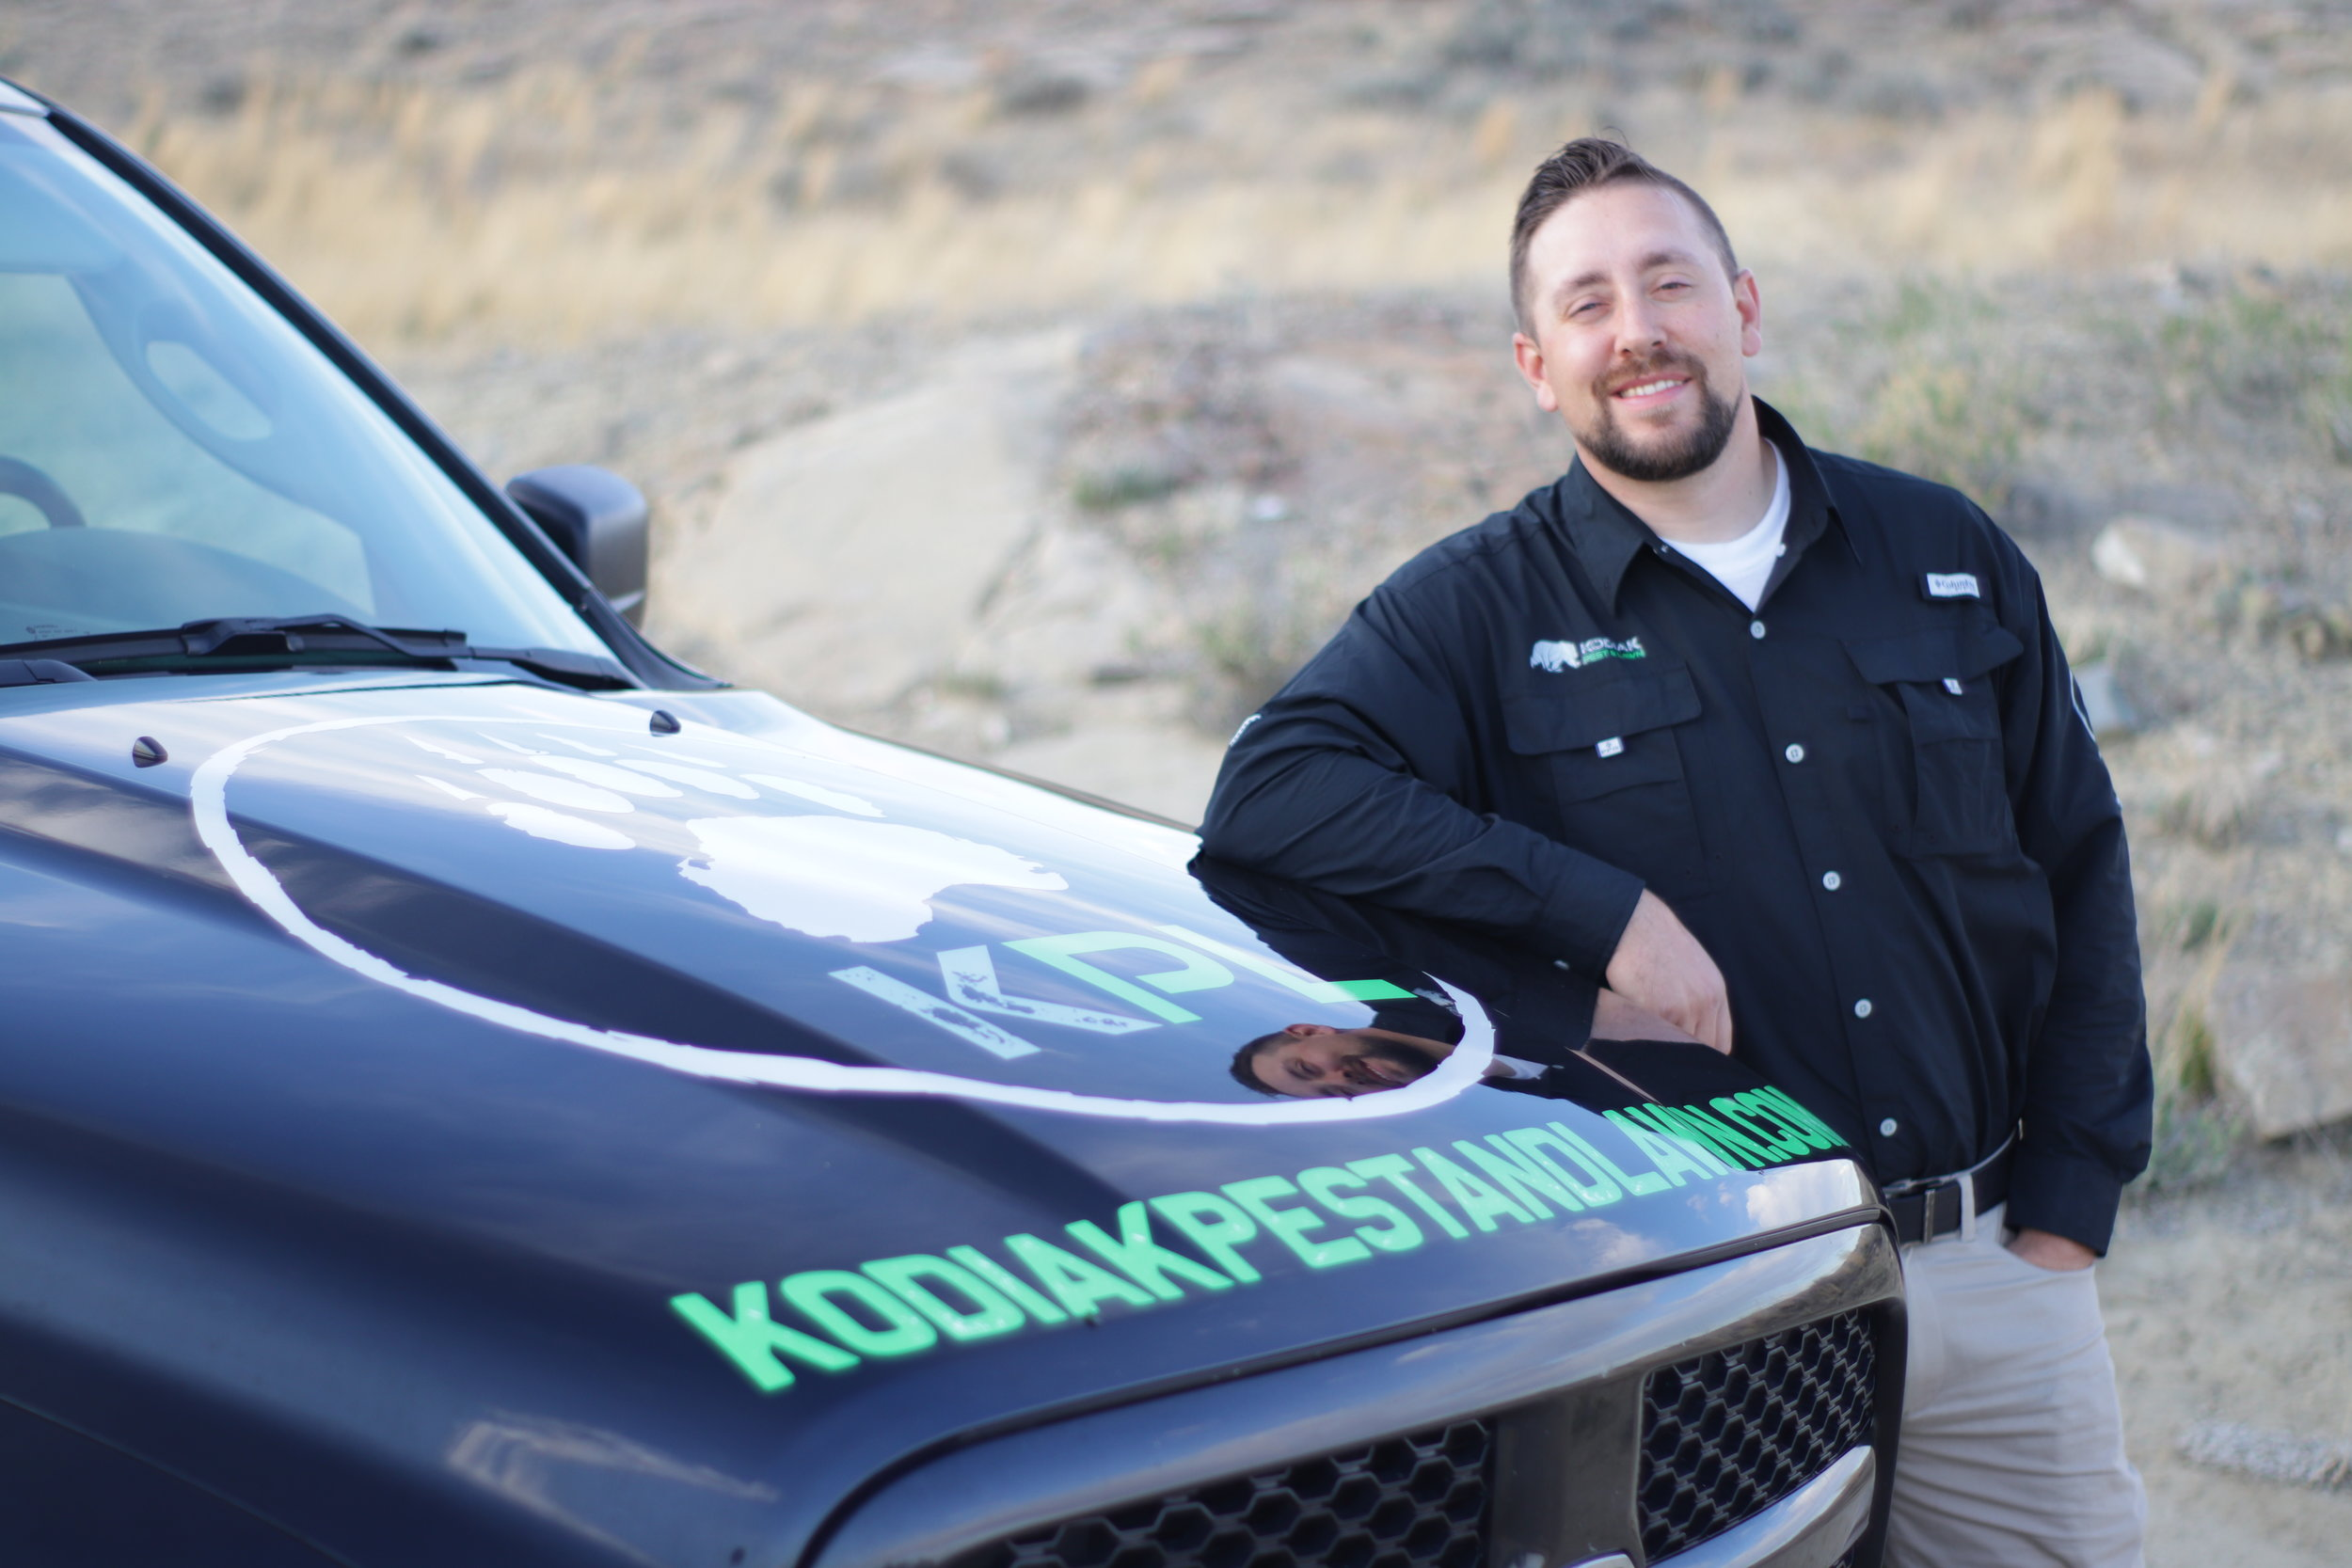 Picture of Jacob and the pest control truck.JPG